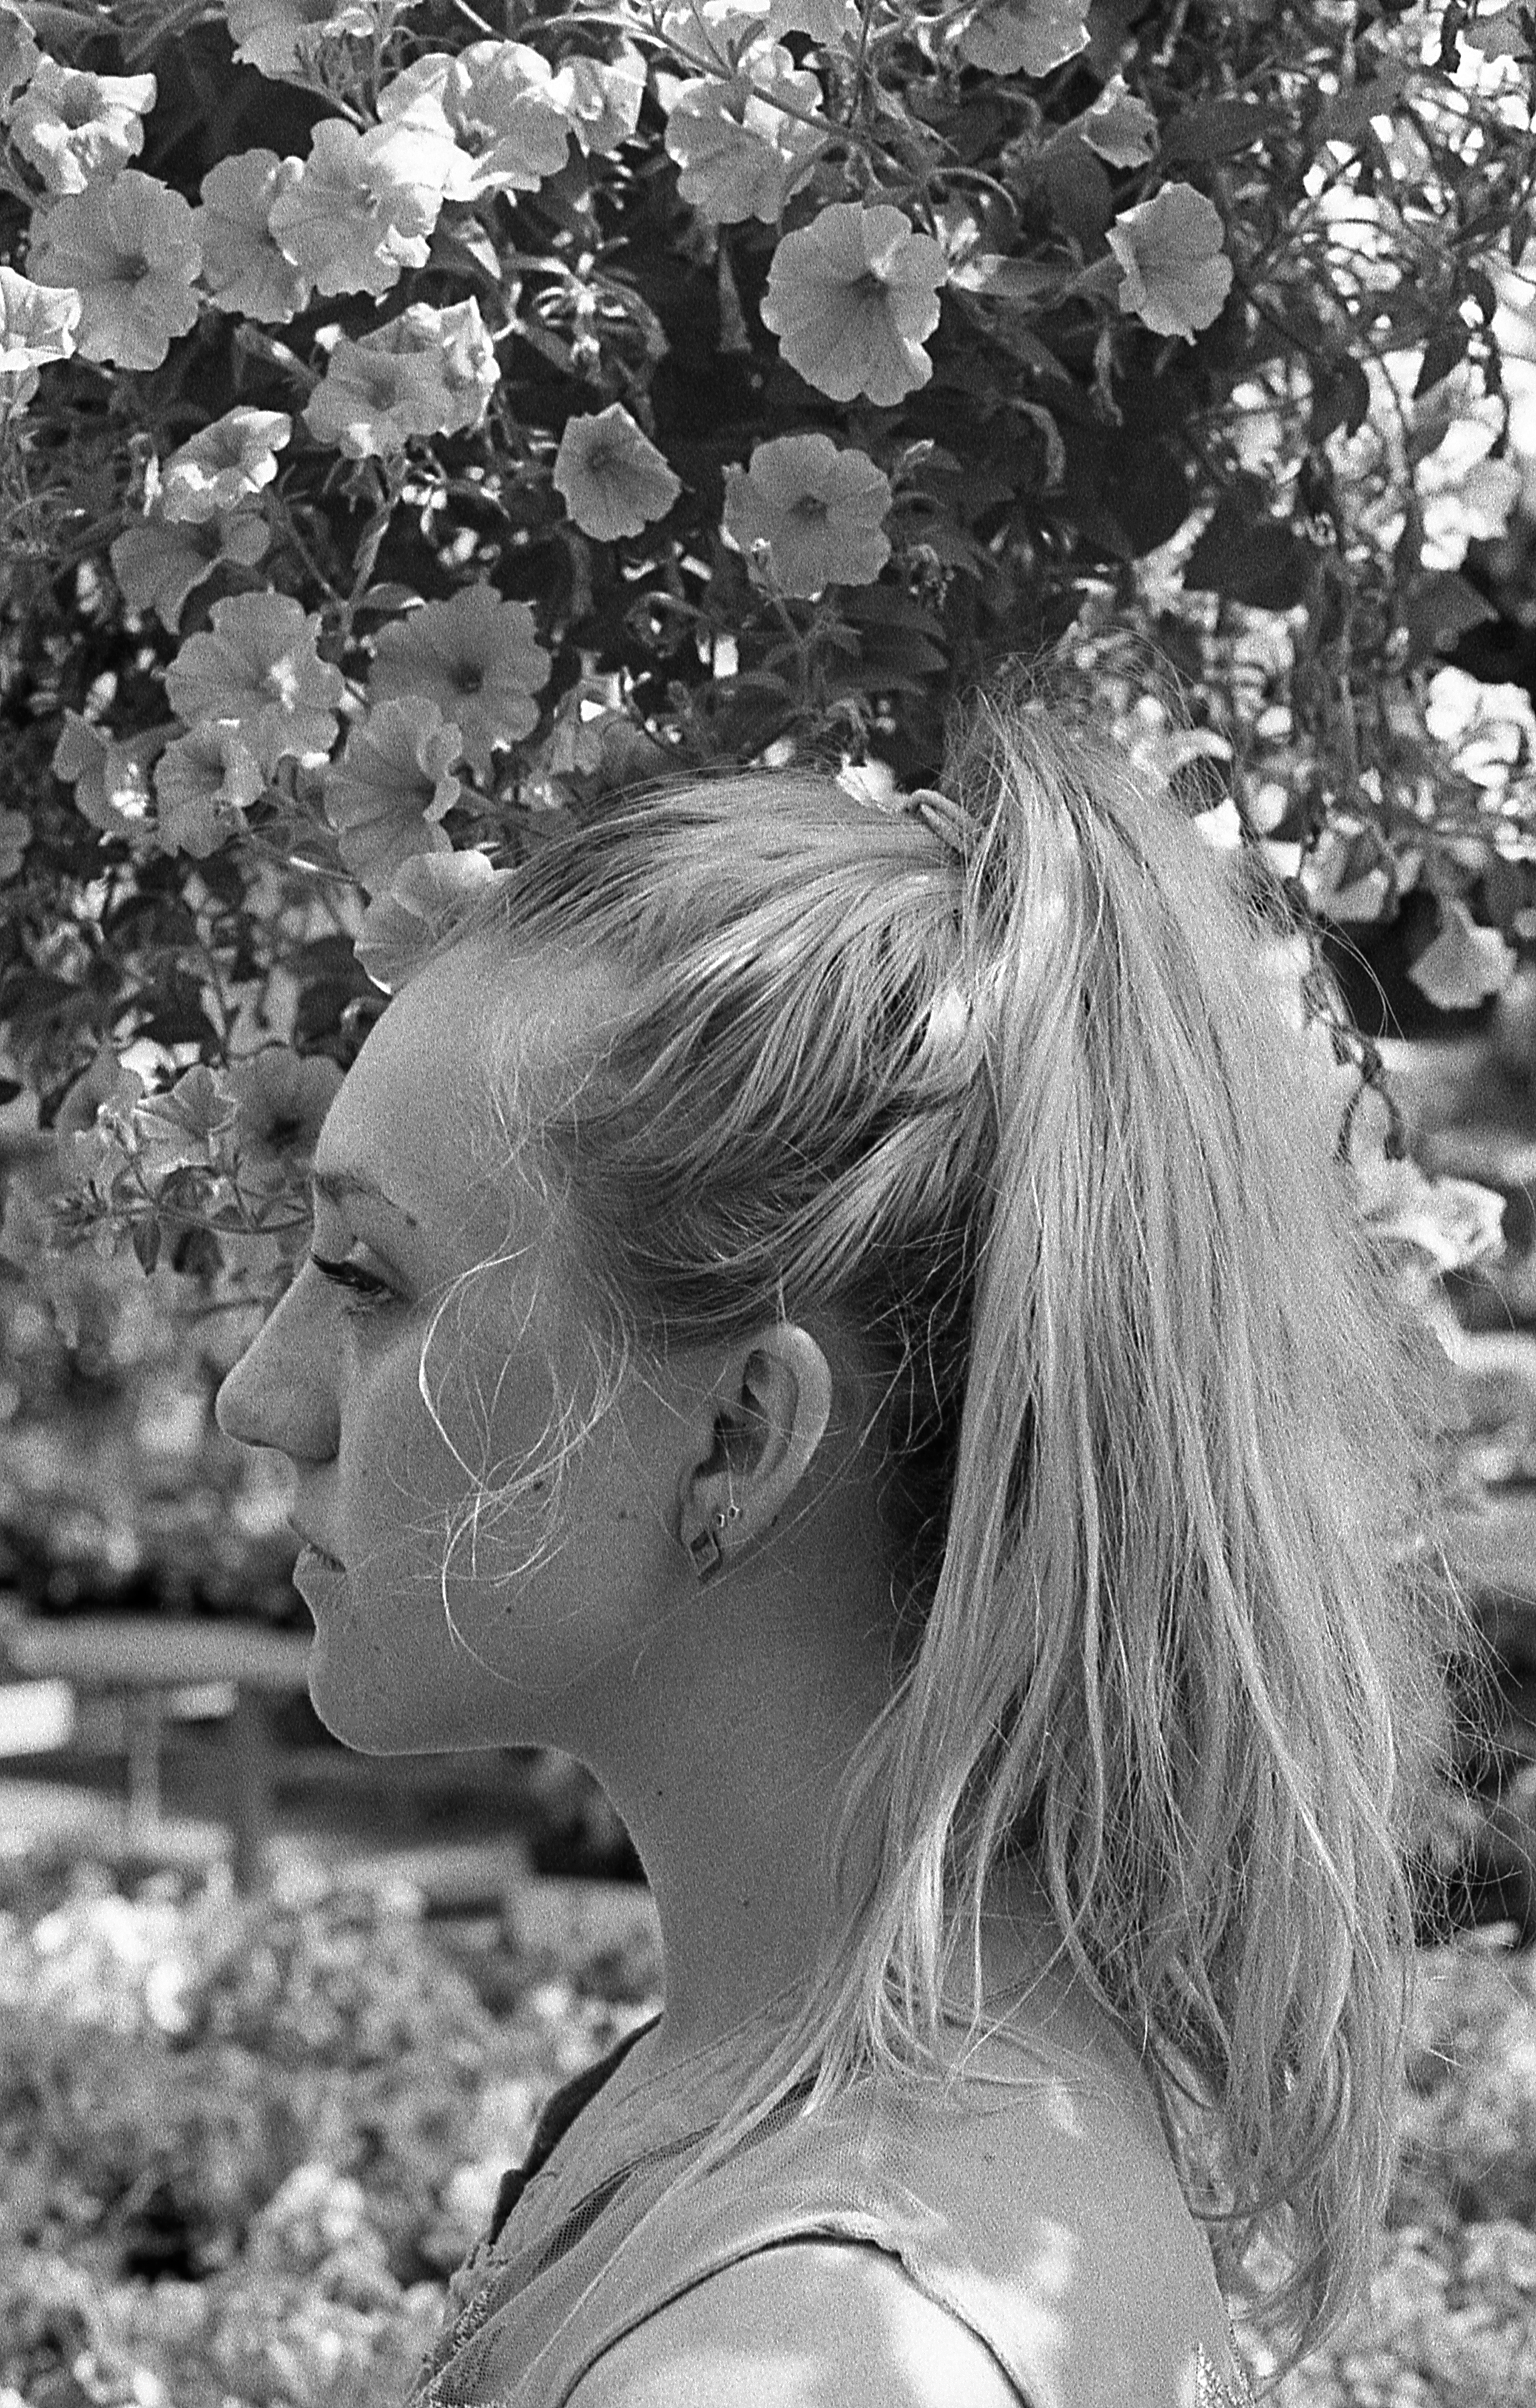 Autumn Triggs - By Jackson CainQuarrels, push them by. (5)You are and always will be  (7)golden in my eye. (5)___________________________________Forgiving, loving, and passionateWith positive adjectives departed,The objective beauty of your person remains. Seeing me for my potential and others without flaws.Kind, not just to me but all.